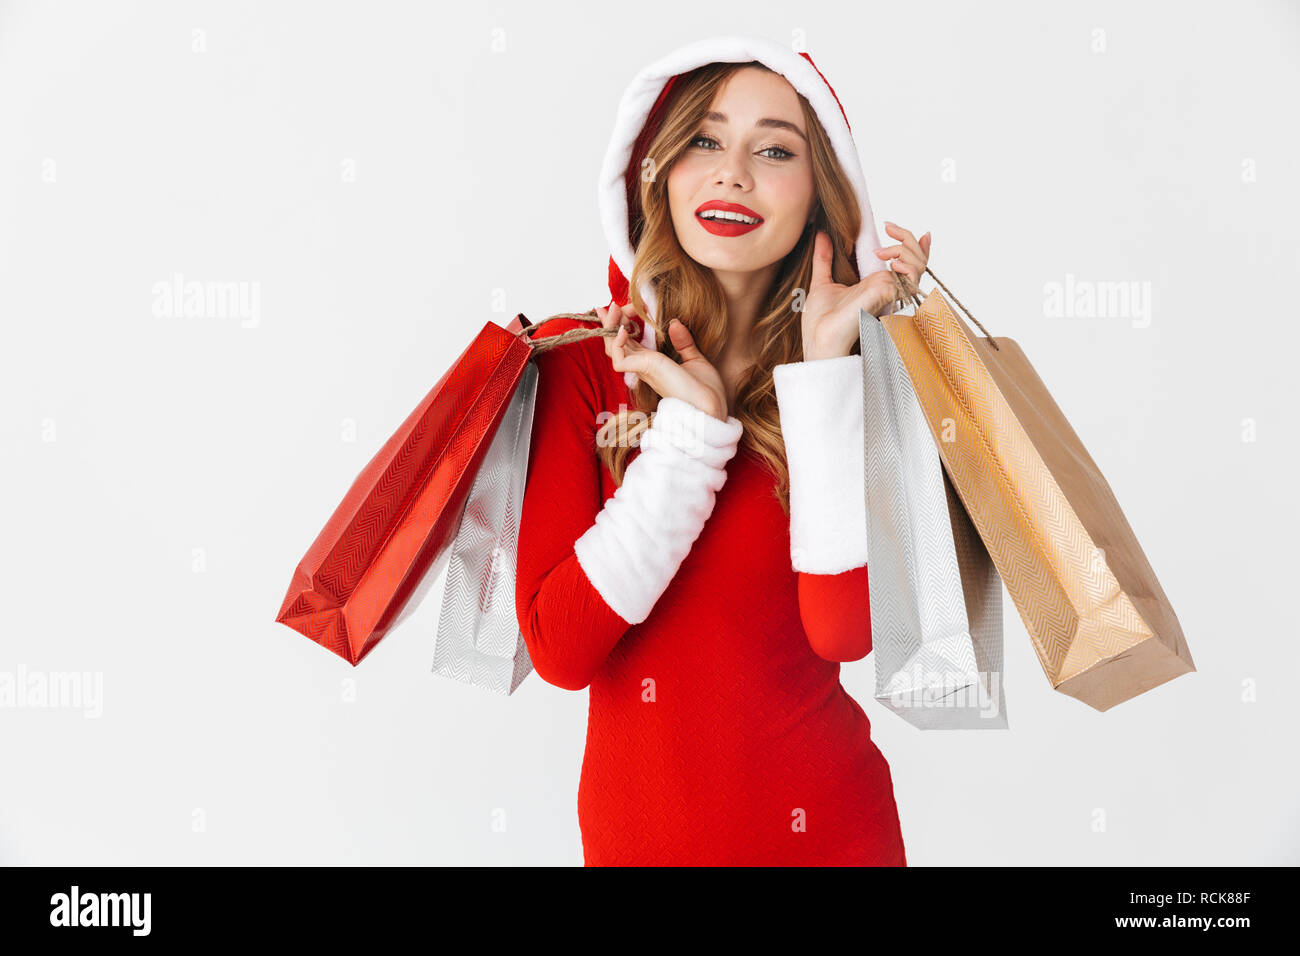 8d7a337990686 Portrait of cheerful woman 20s wearing Santa Claus red costume smiling and  holding colorful paper shopping